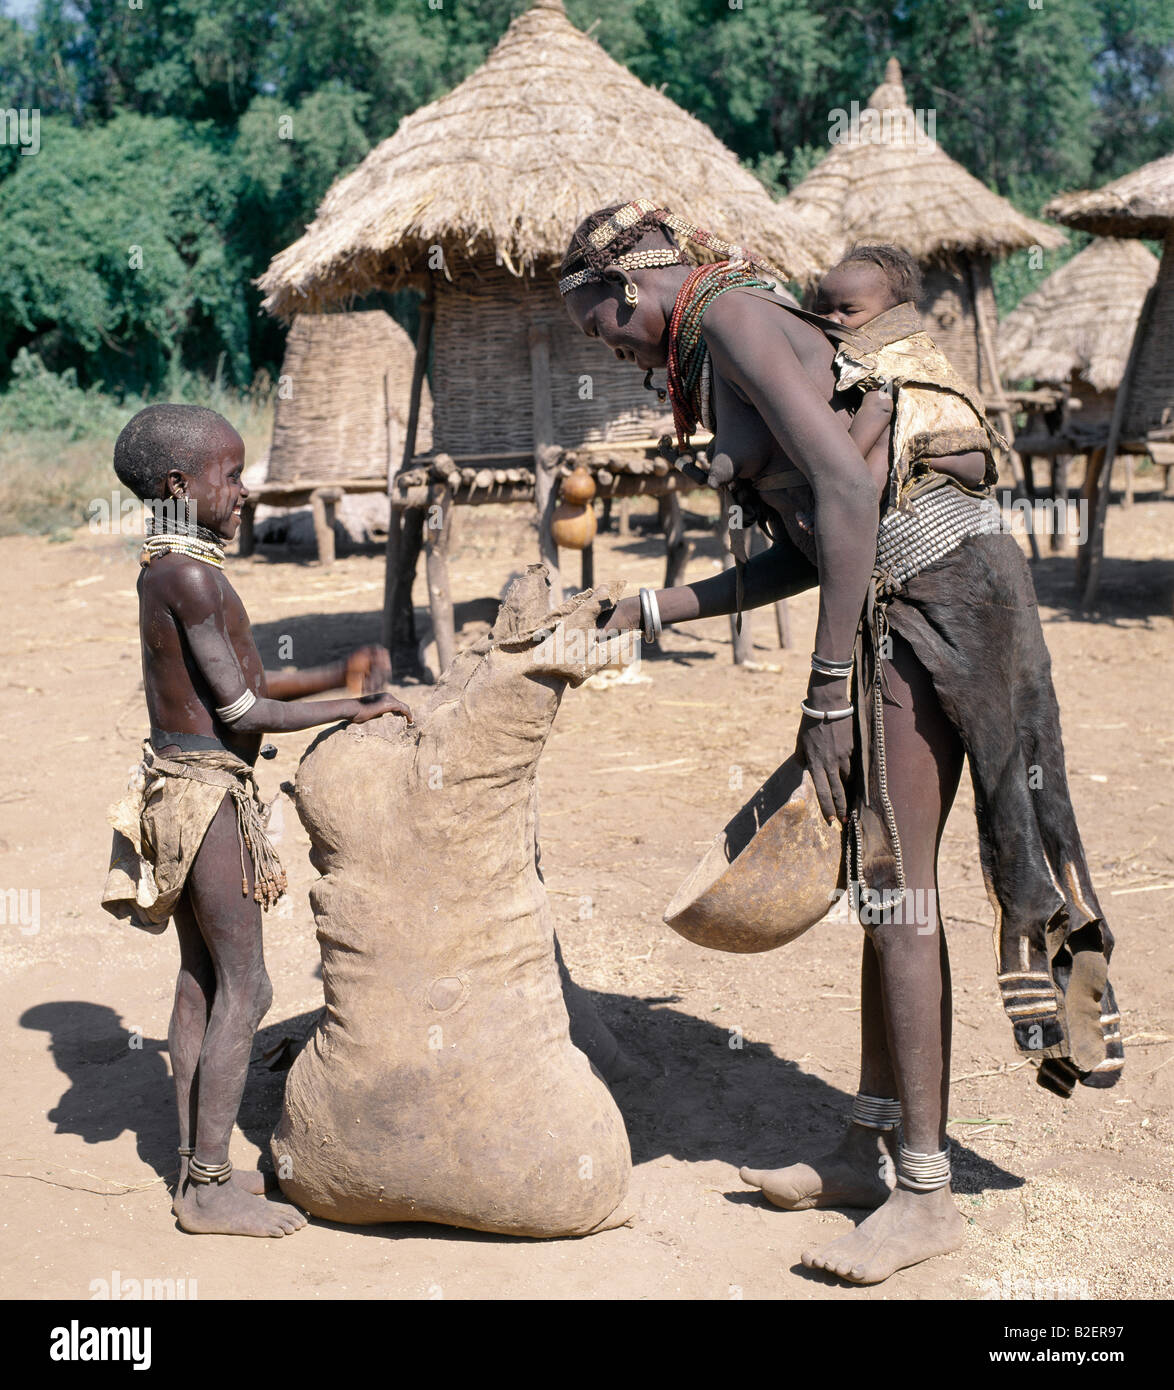 A daughter helps her mother to remove sorghum from a large leather sack. The mother's young baby sleeps  in - Stock Image